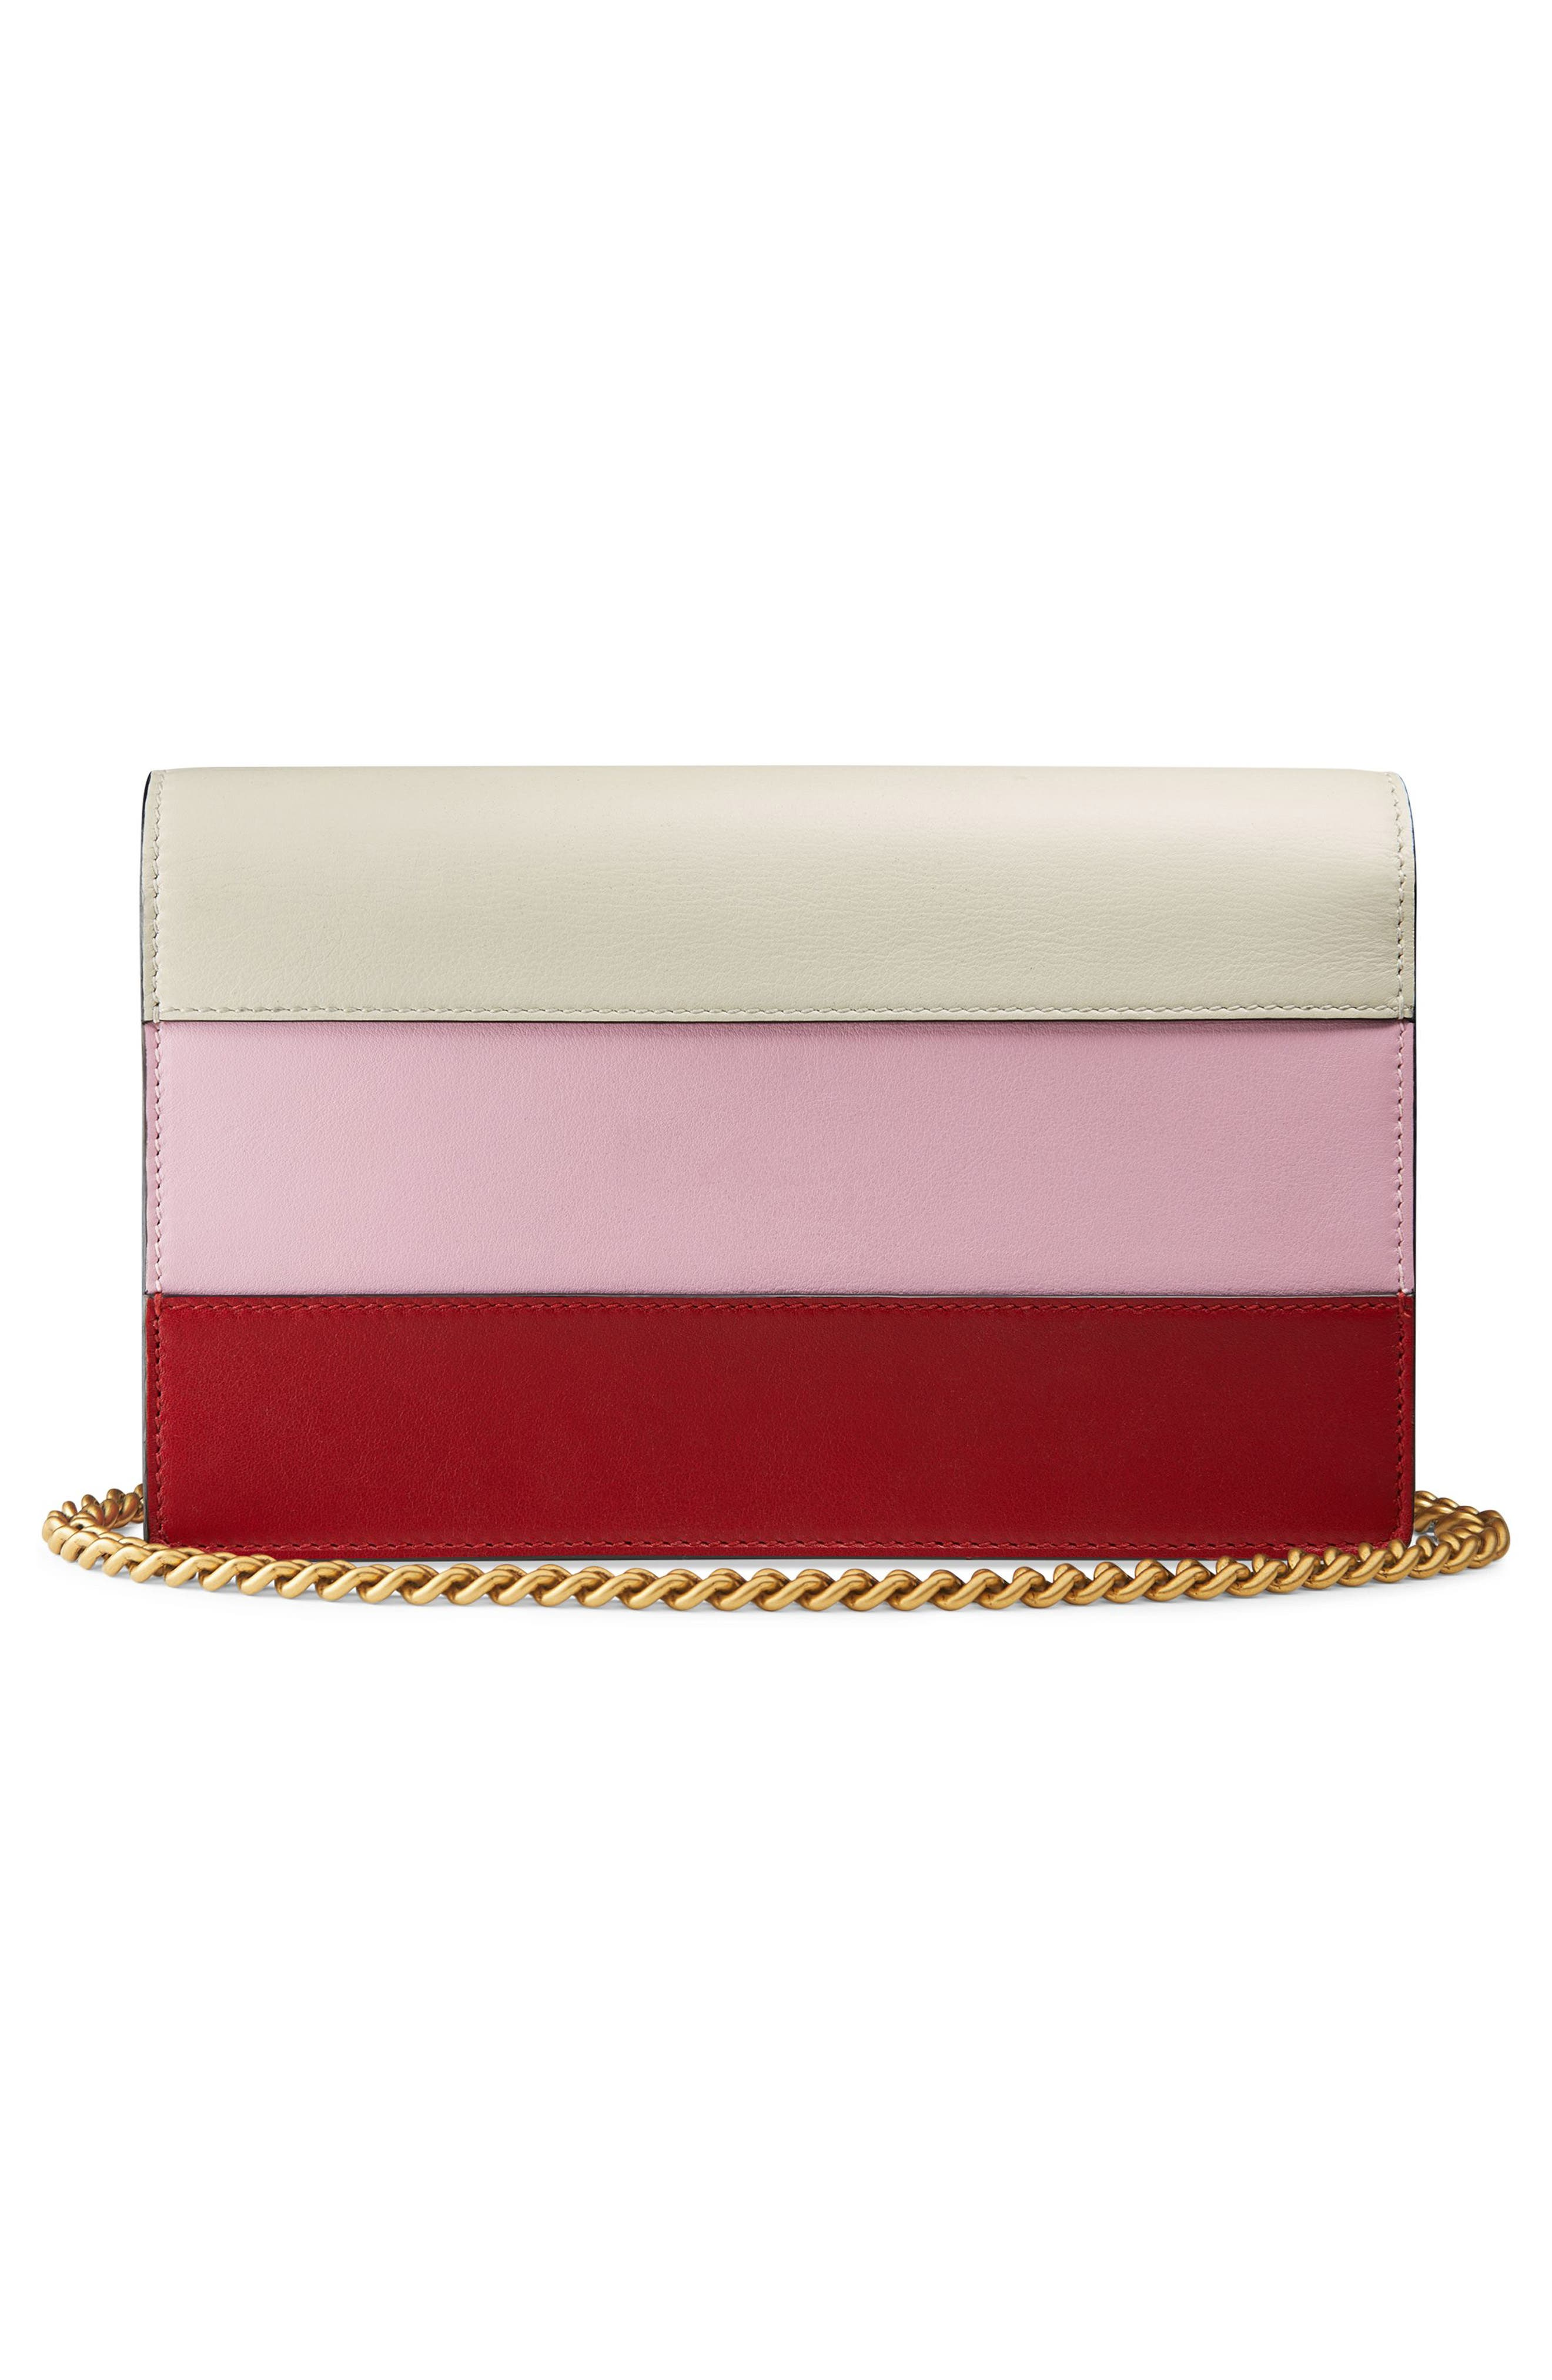 Alternate Image 2  - Gucci Mini Bee Multistripe Leather Shoulder Bag